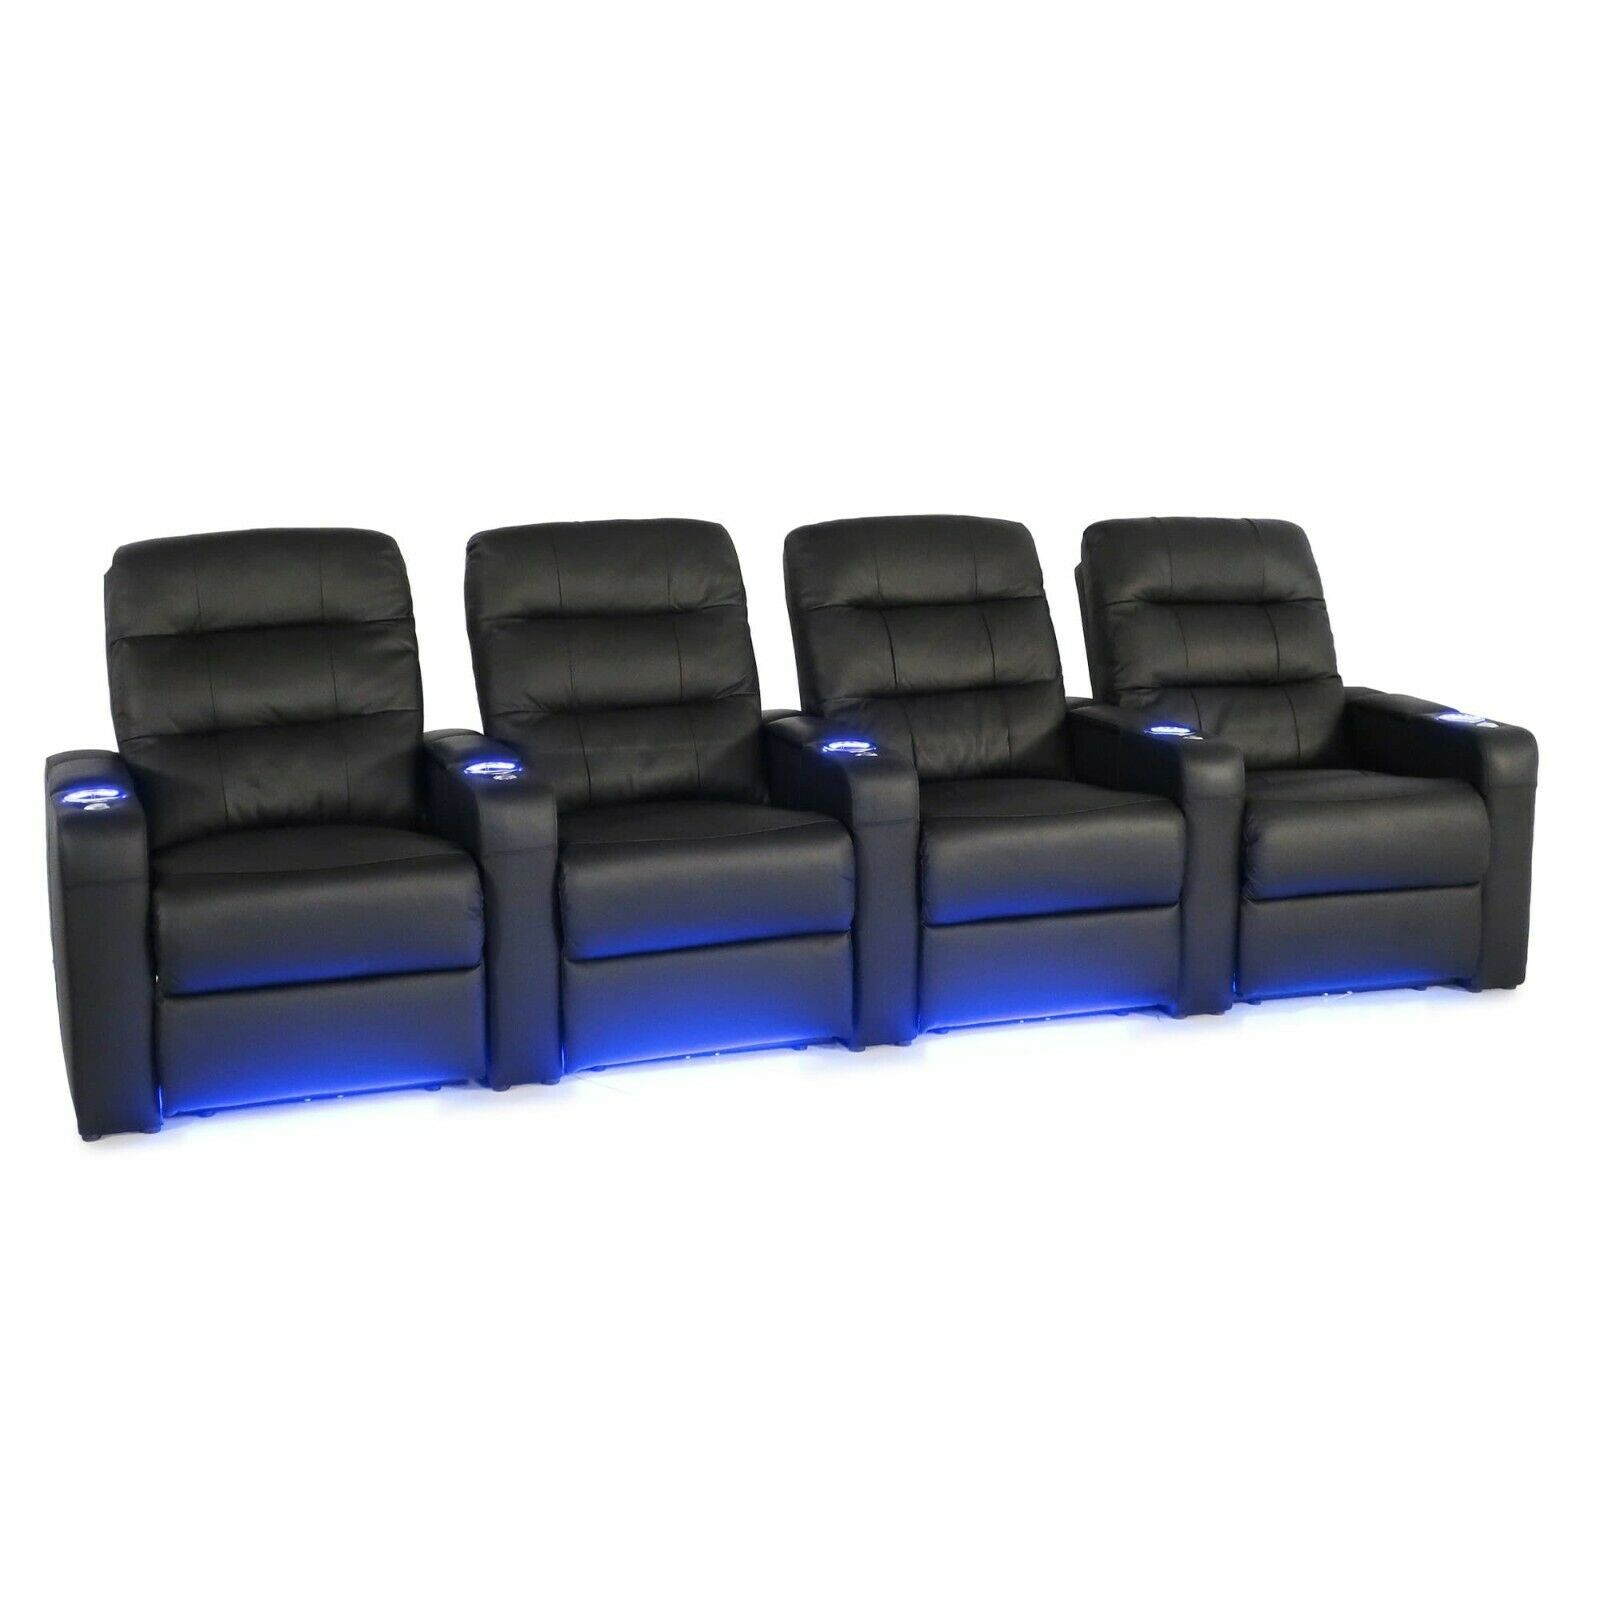 Seatcraft Excalibur Black Leather Home Theater Seating Power